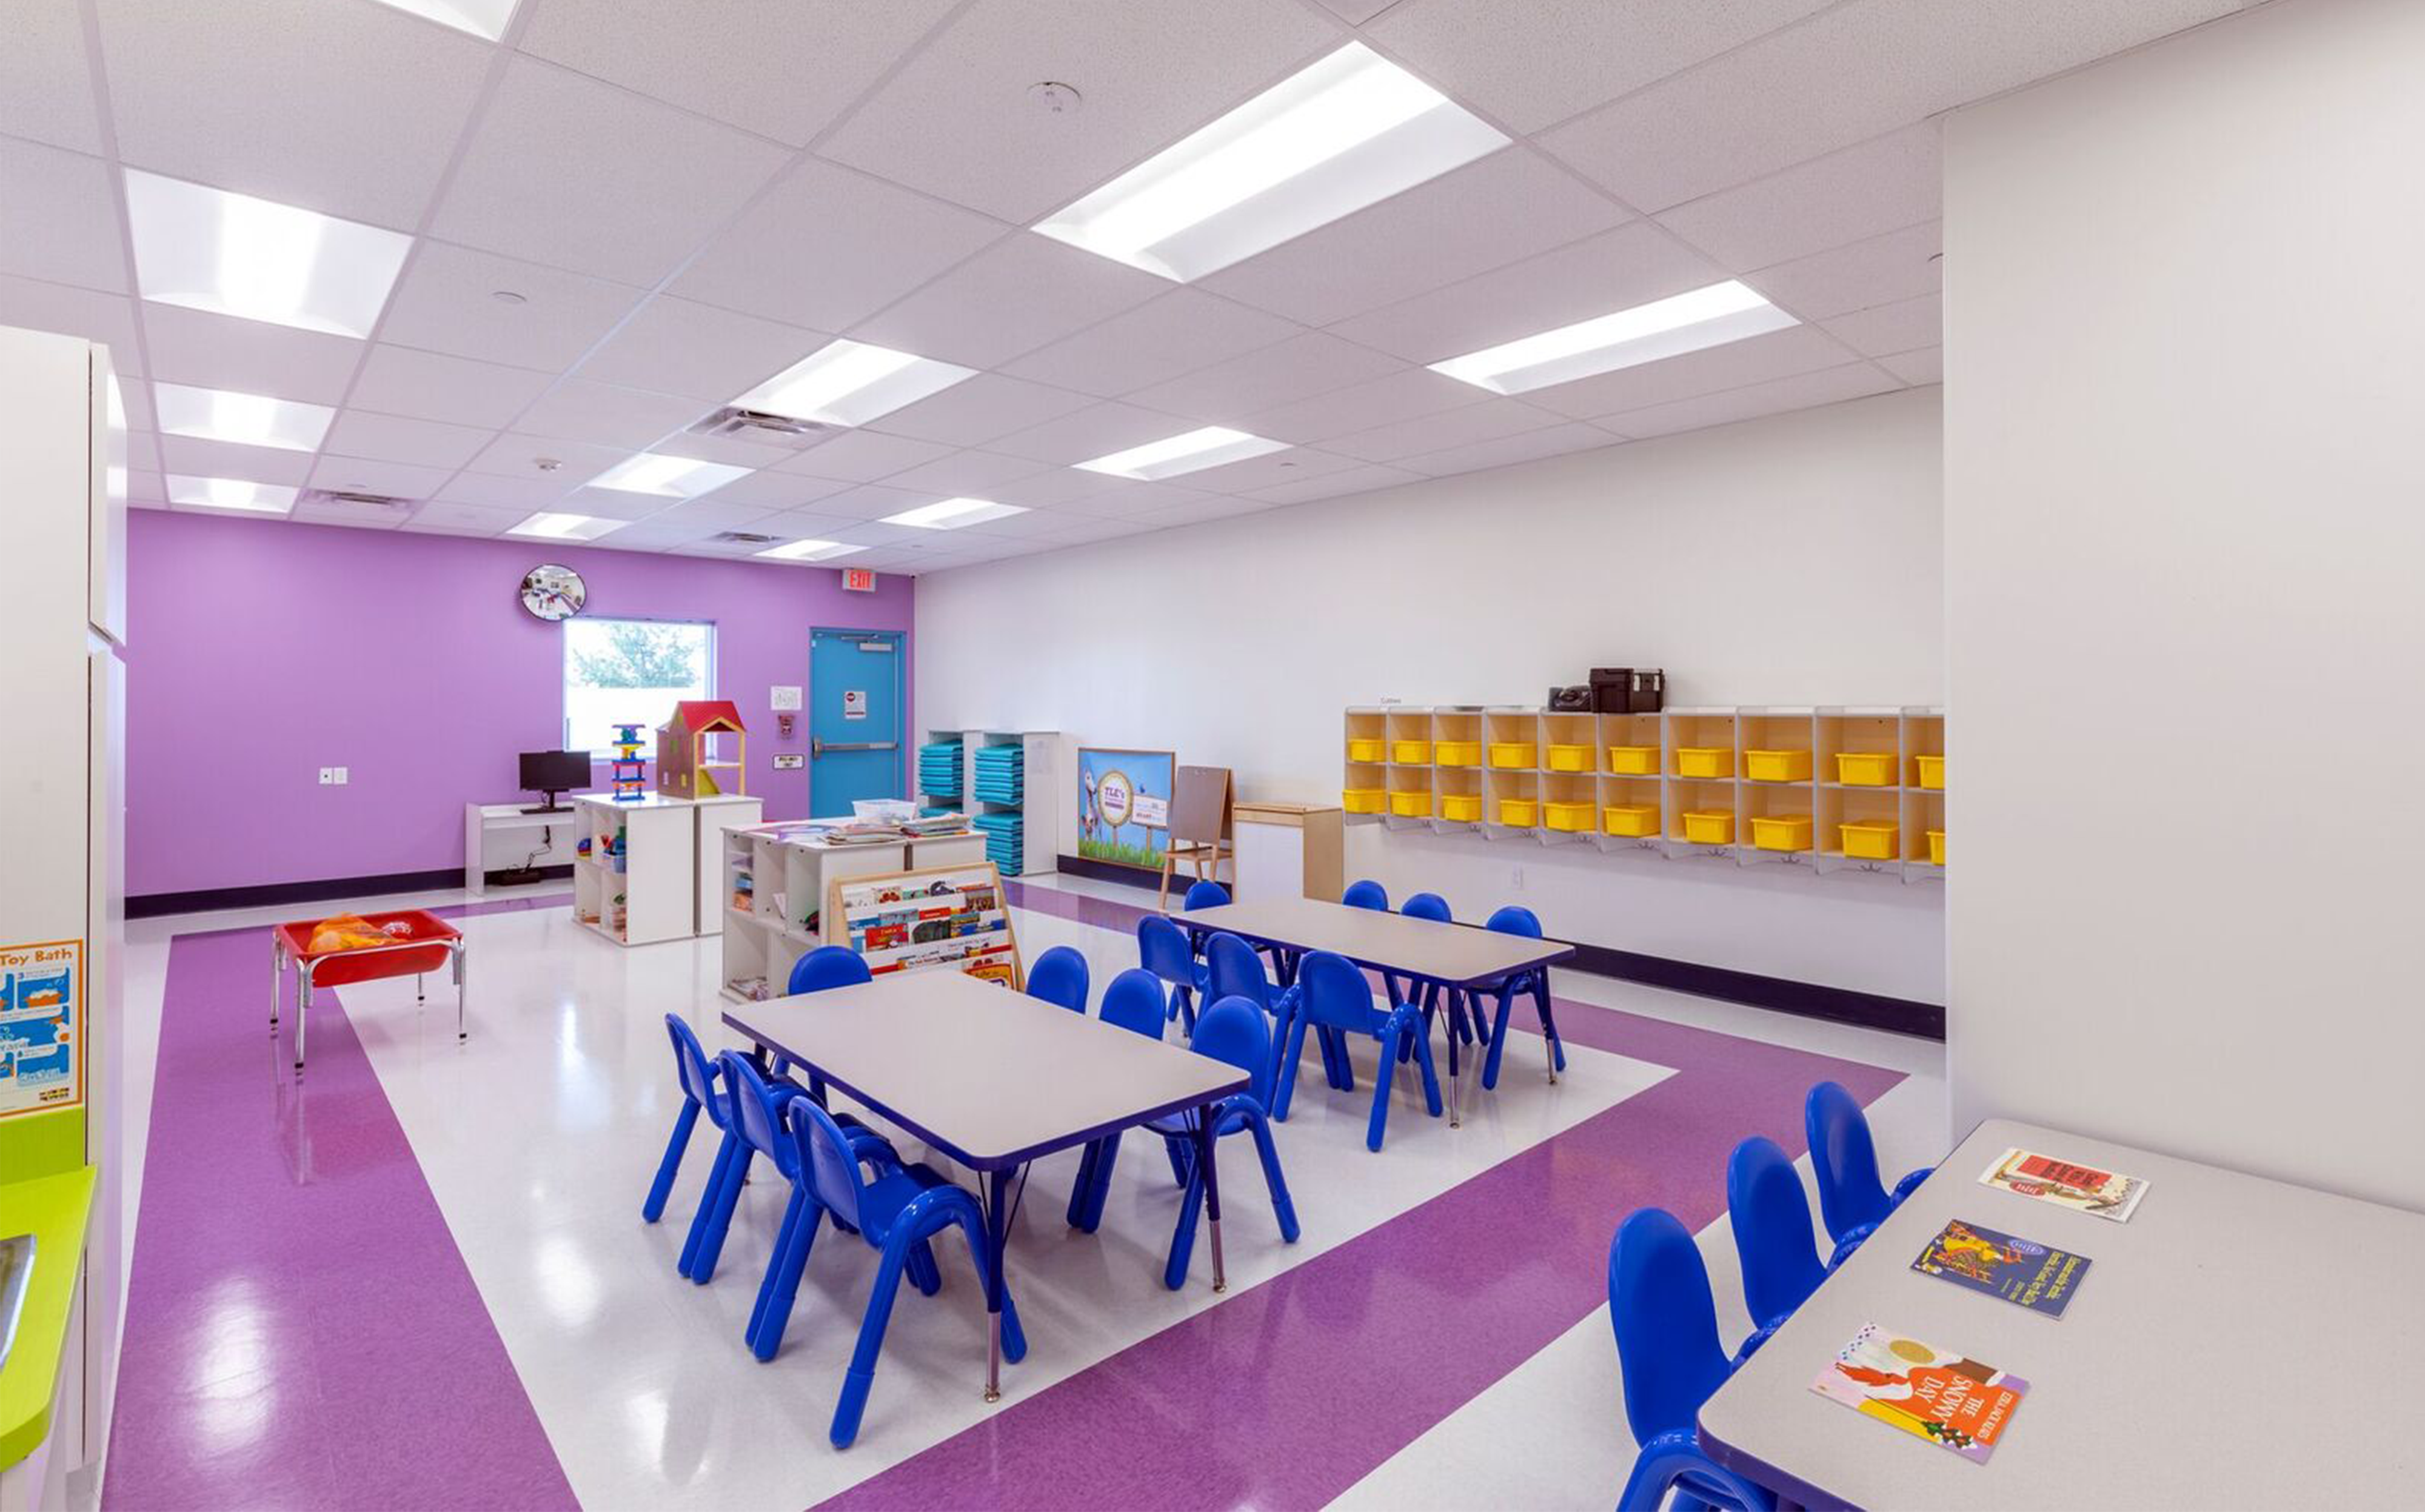 The Learning Experience Classroom